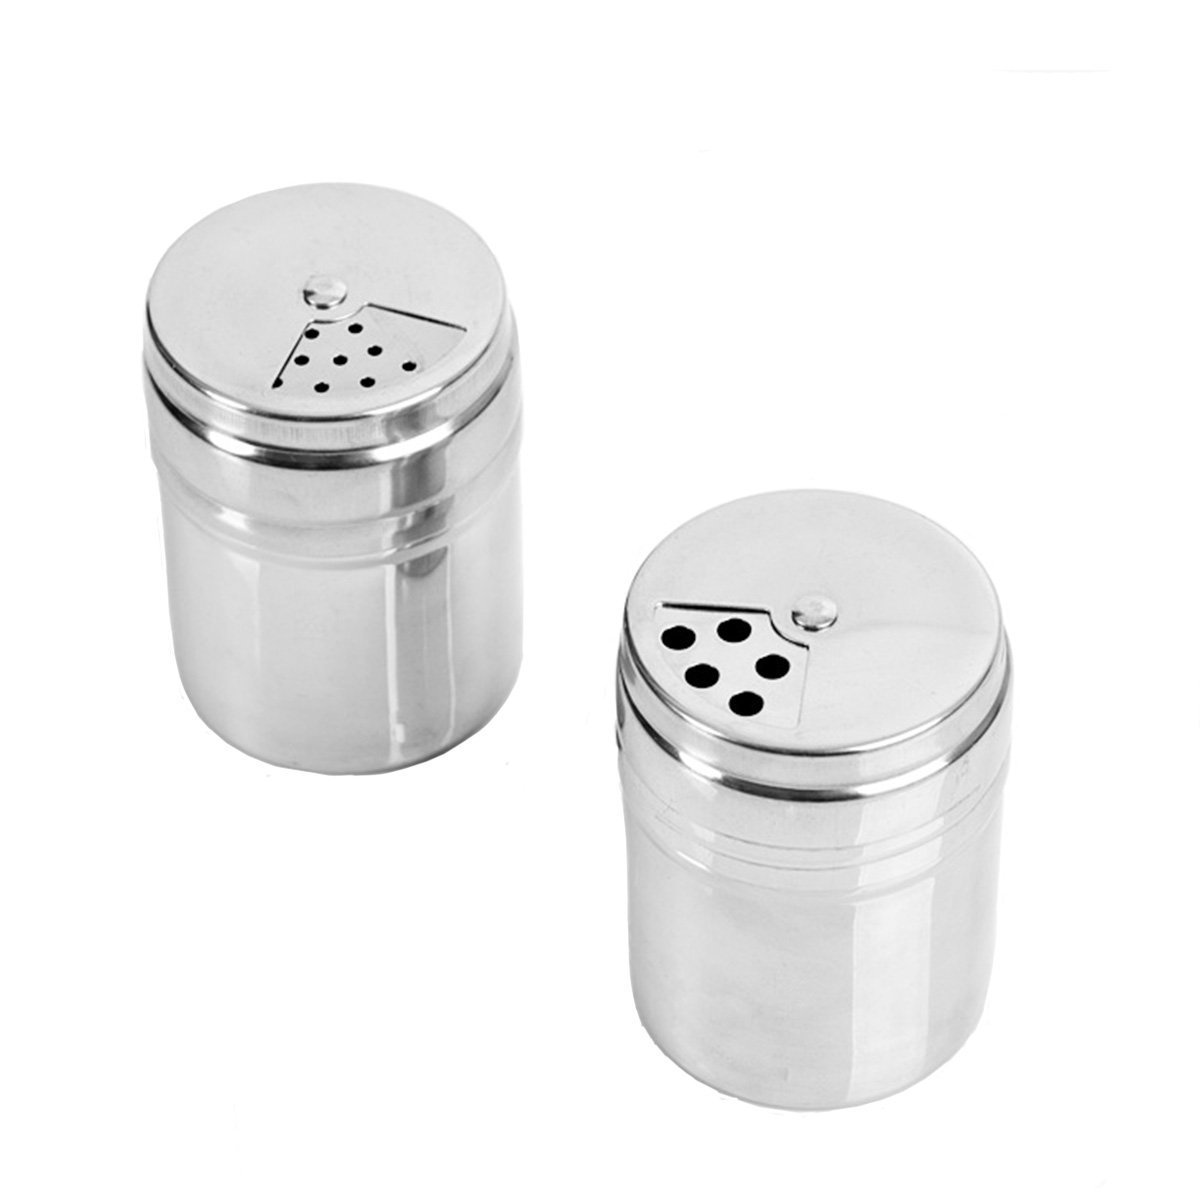 Verdental Stainless Steel Dredge Salt / Sugar / Spice / Pepper Shaker Seasoning Cans with Rotating Cover - 6 PCS